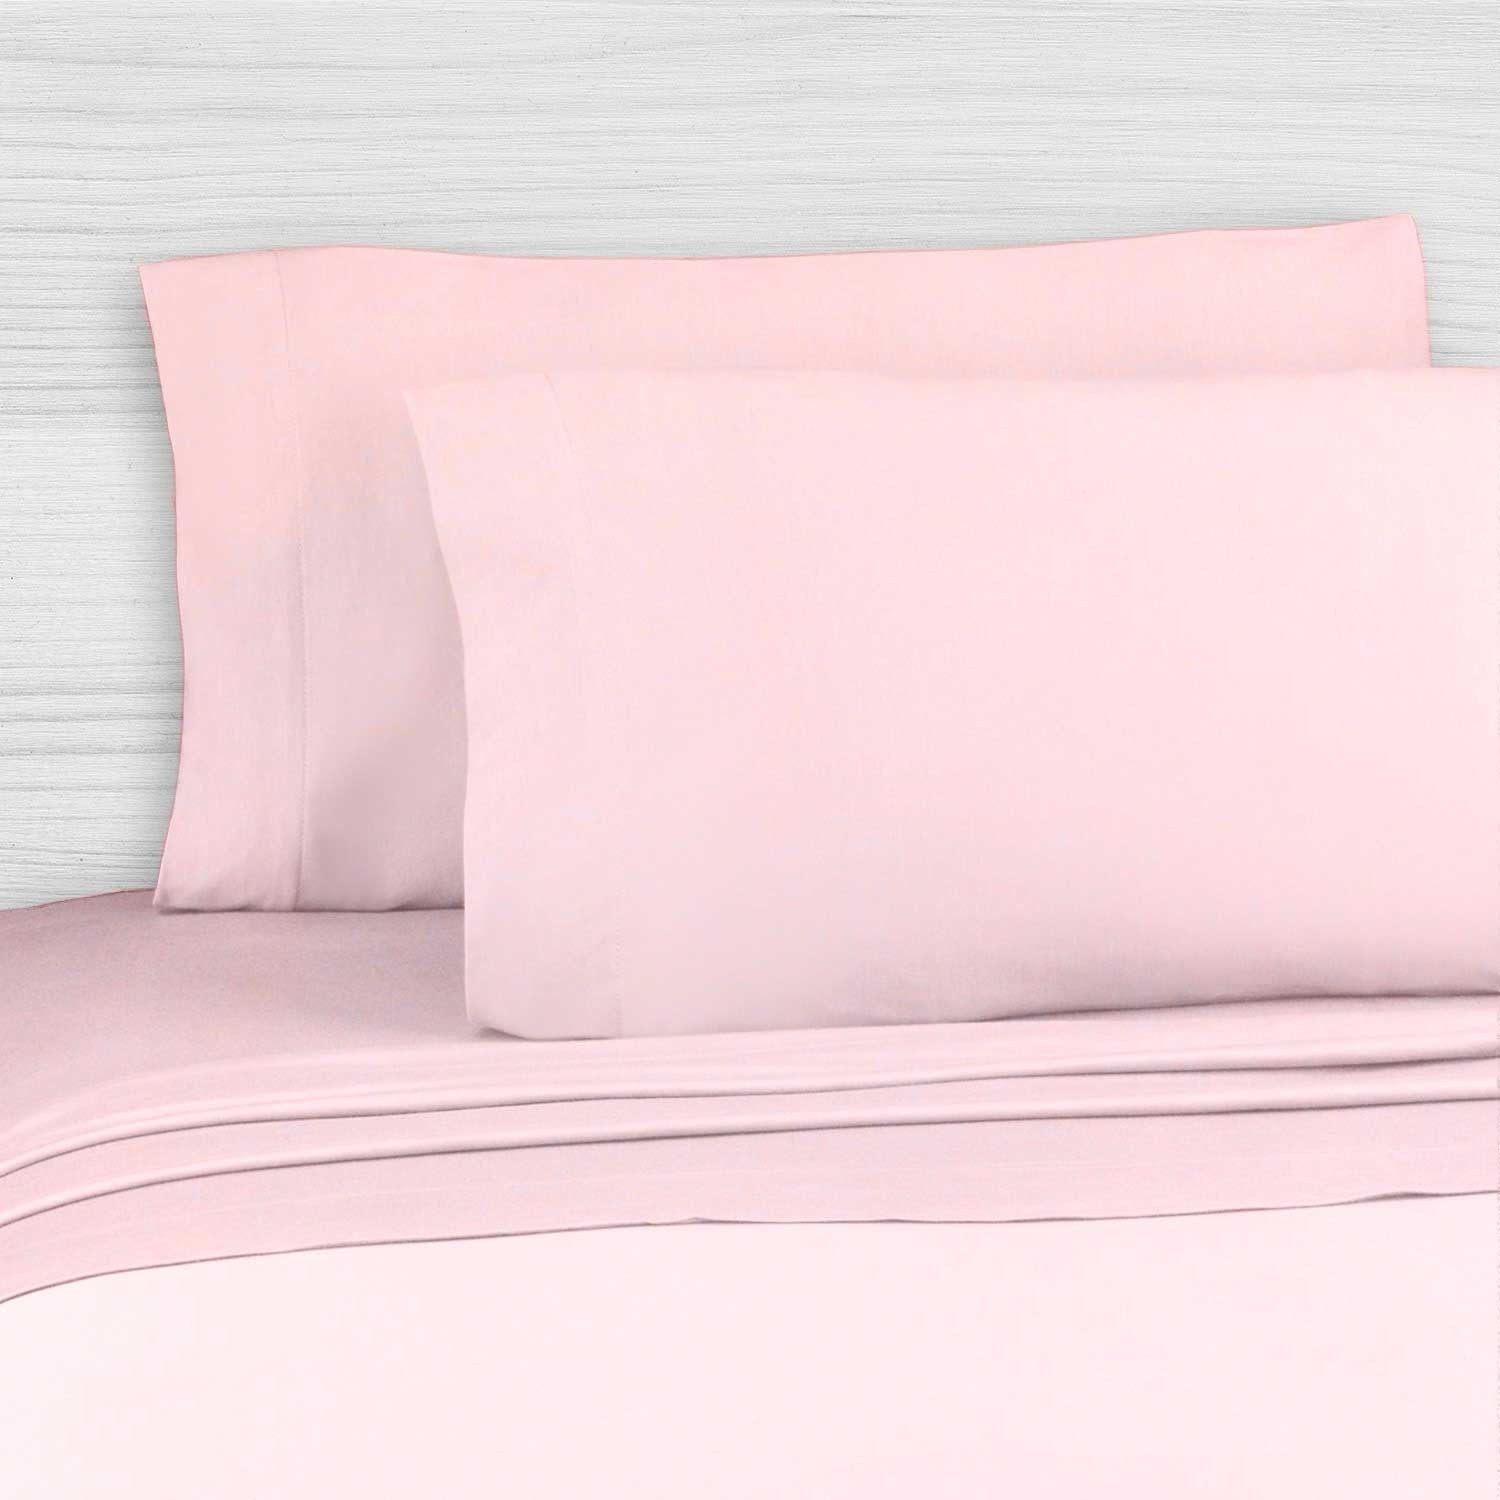 Perfect Sheet Set, 200 Thread Count, Cotton Blend - Light Pink Queen